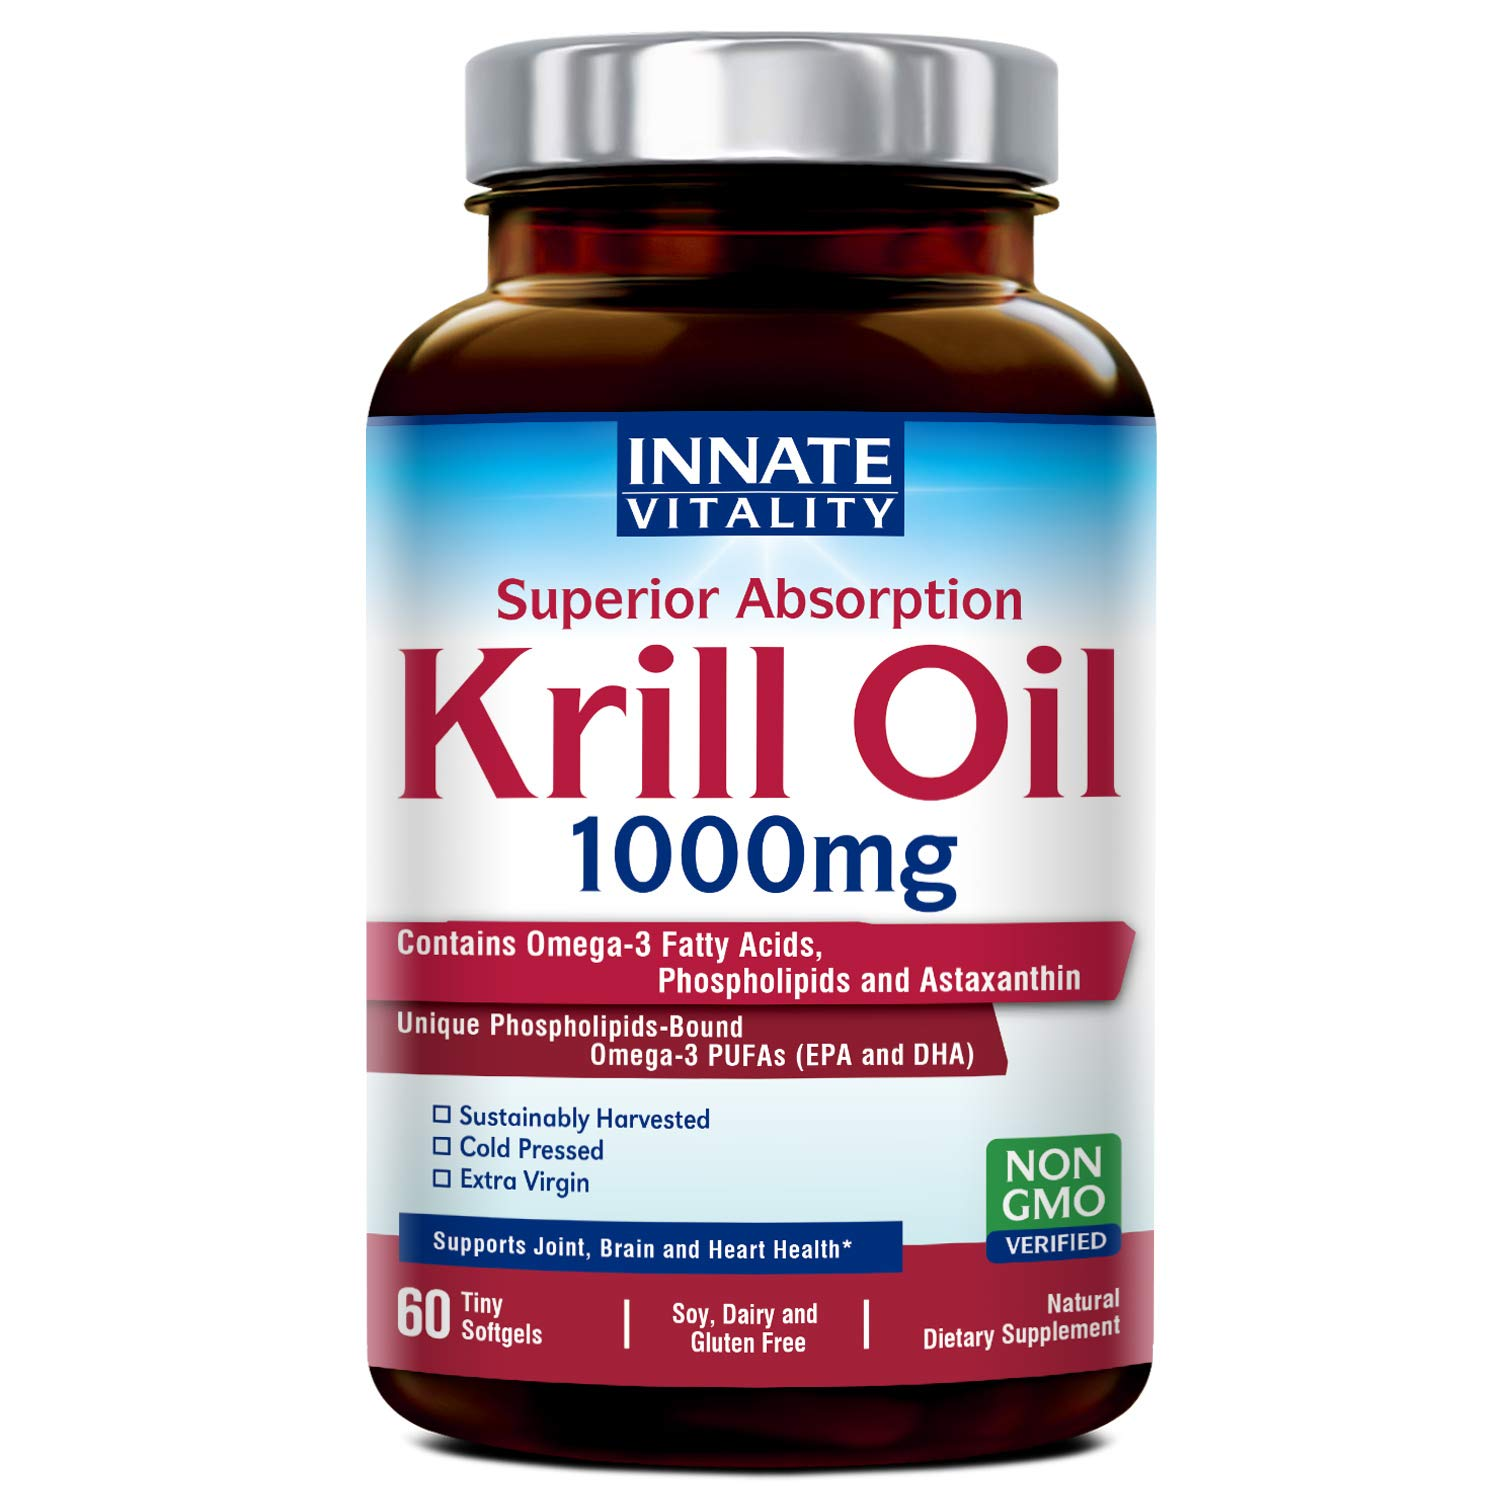 Krill Oil with Omega3s Phospholipids and Astaxanthin 1000mg per Serving, 60 Softgels, Superior Absorption, Non-GMO, NO Gluten NO Dairy NO Soy, Supports Joint, Brain and Heart Health, Made in USA